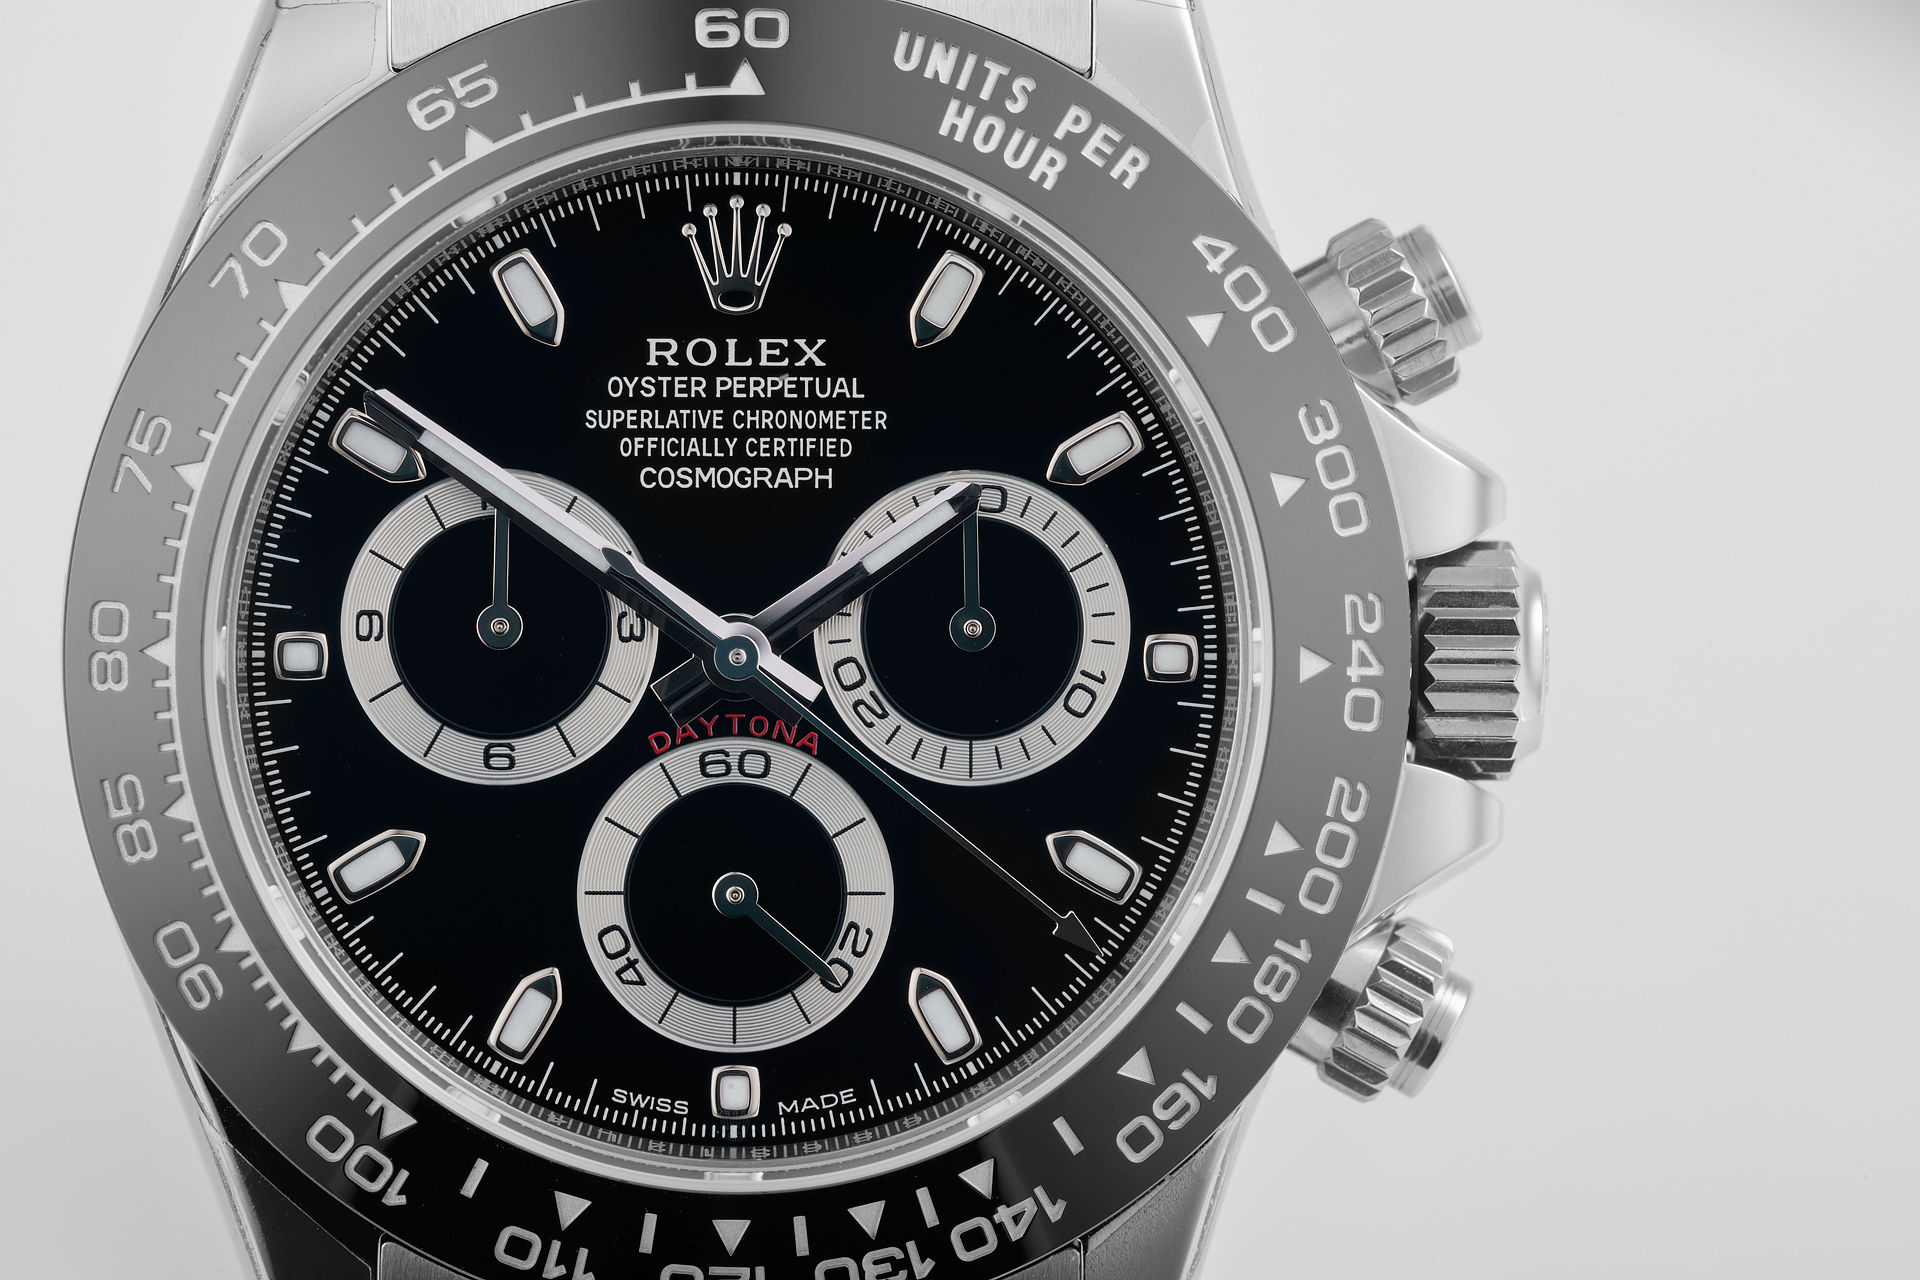 ref 116500LN | Brand New Stickered '5 Year Warranty' | Rolex Cosmograph Daytona